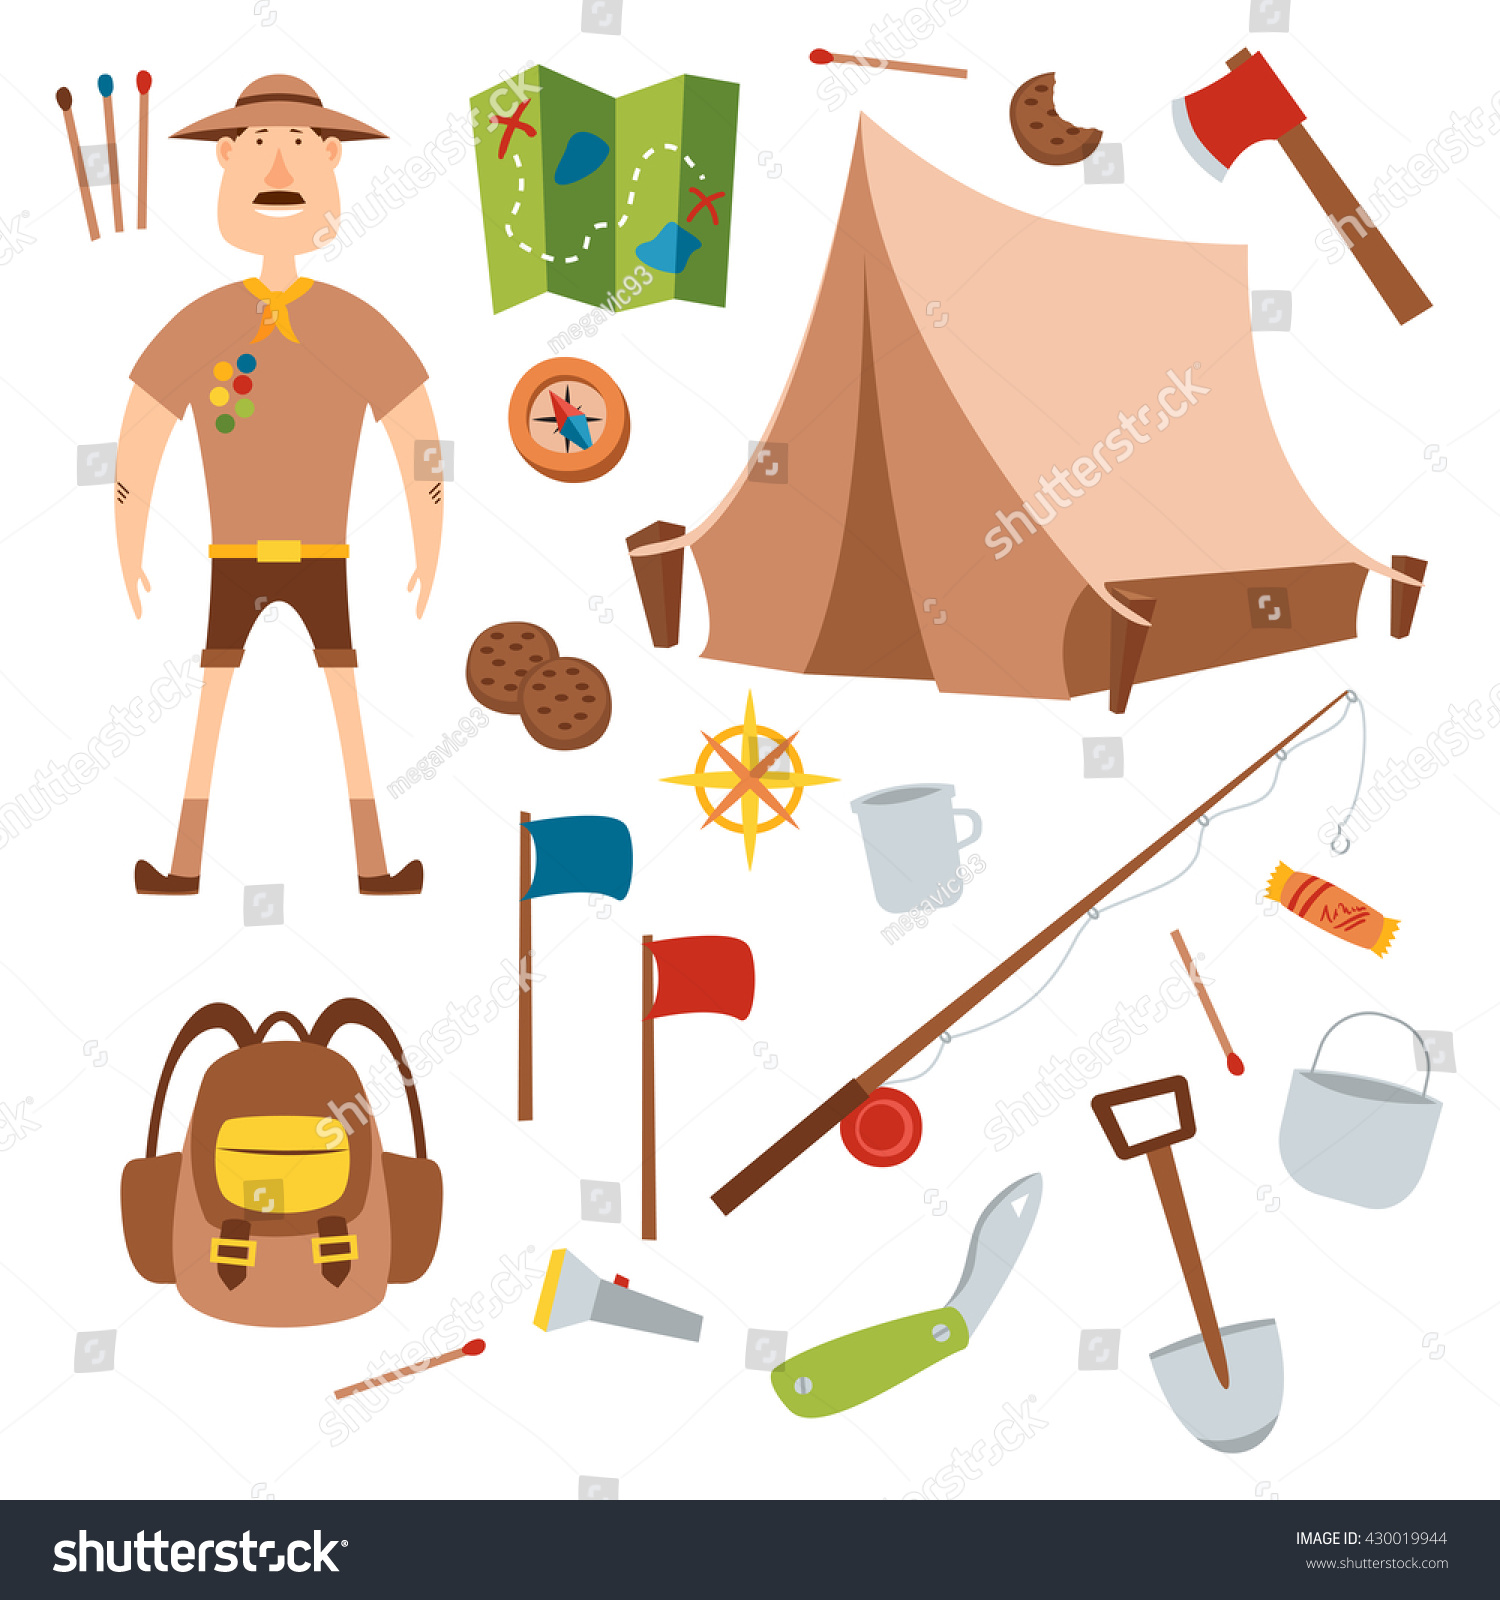 Set Camping Equipment Symbols Boy Scouts Stock Vector Royalty Free